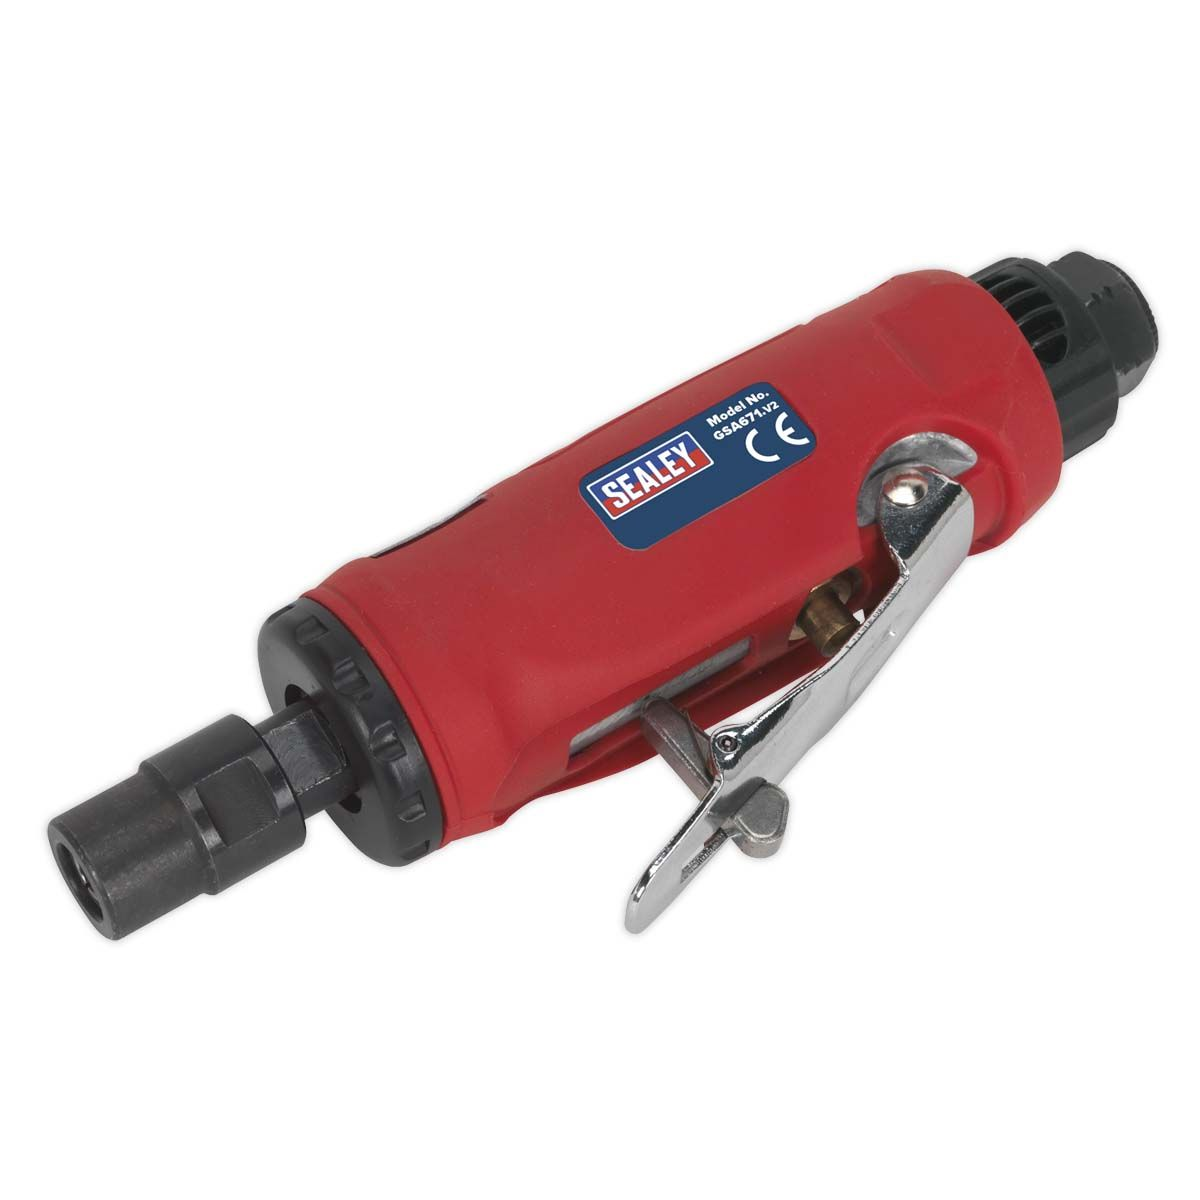 Sealey Air Die Grinder